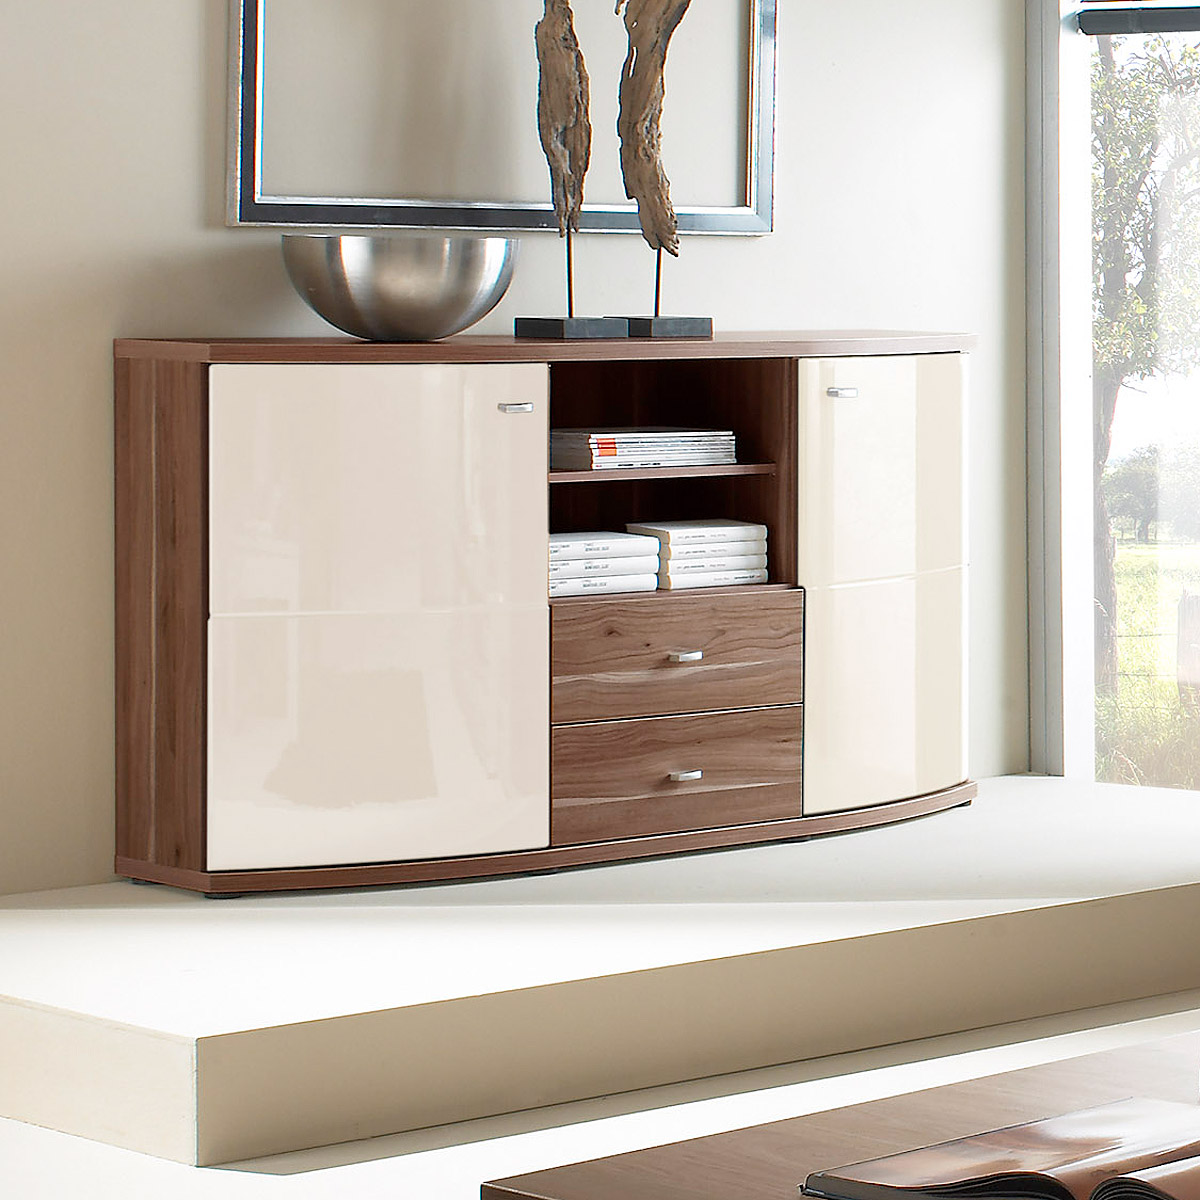 sideboard kentucky kommode anrichte kernnussbaum creme hochglanz ebay. Black Bedroom Furniture Sets. Home Design Ideas